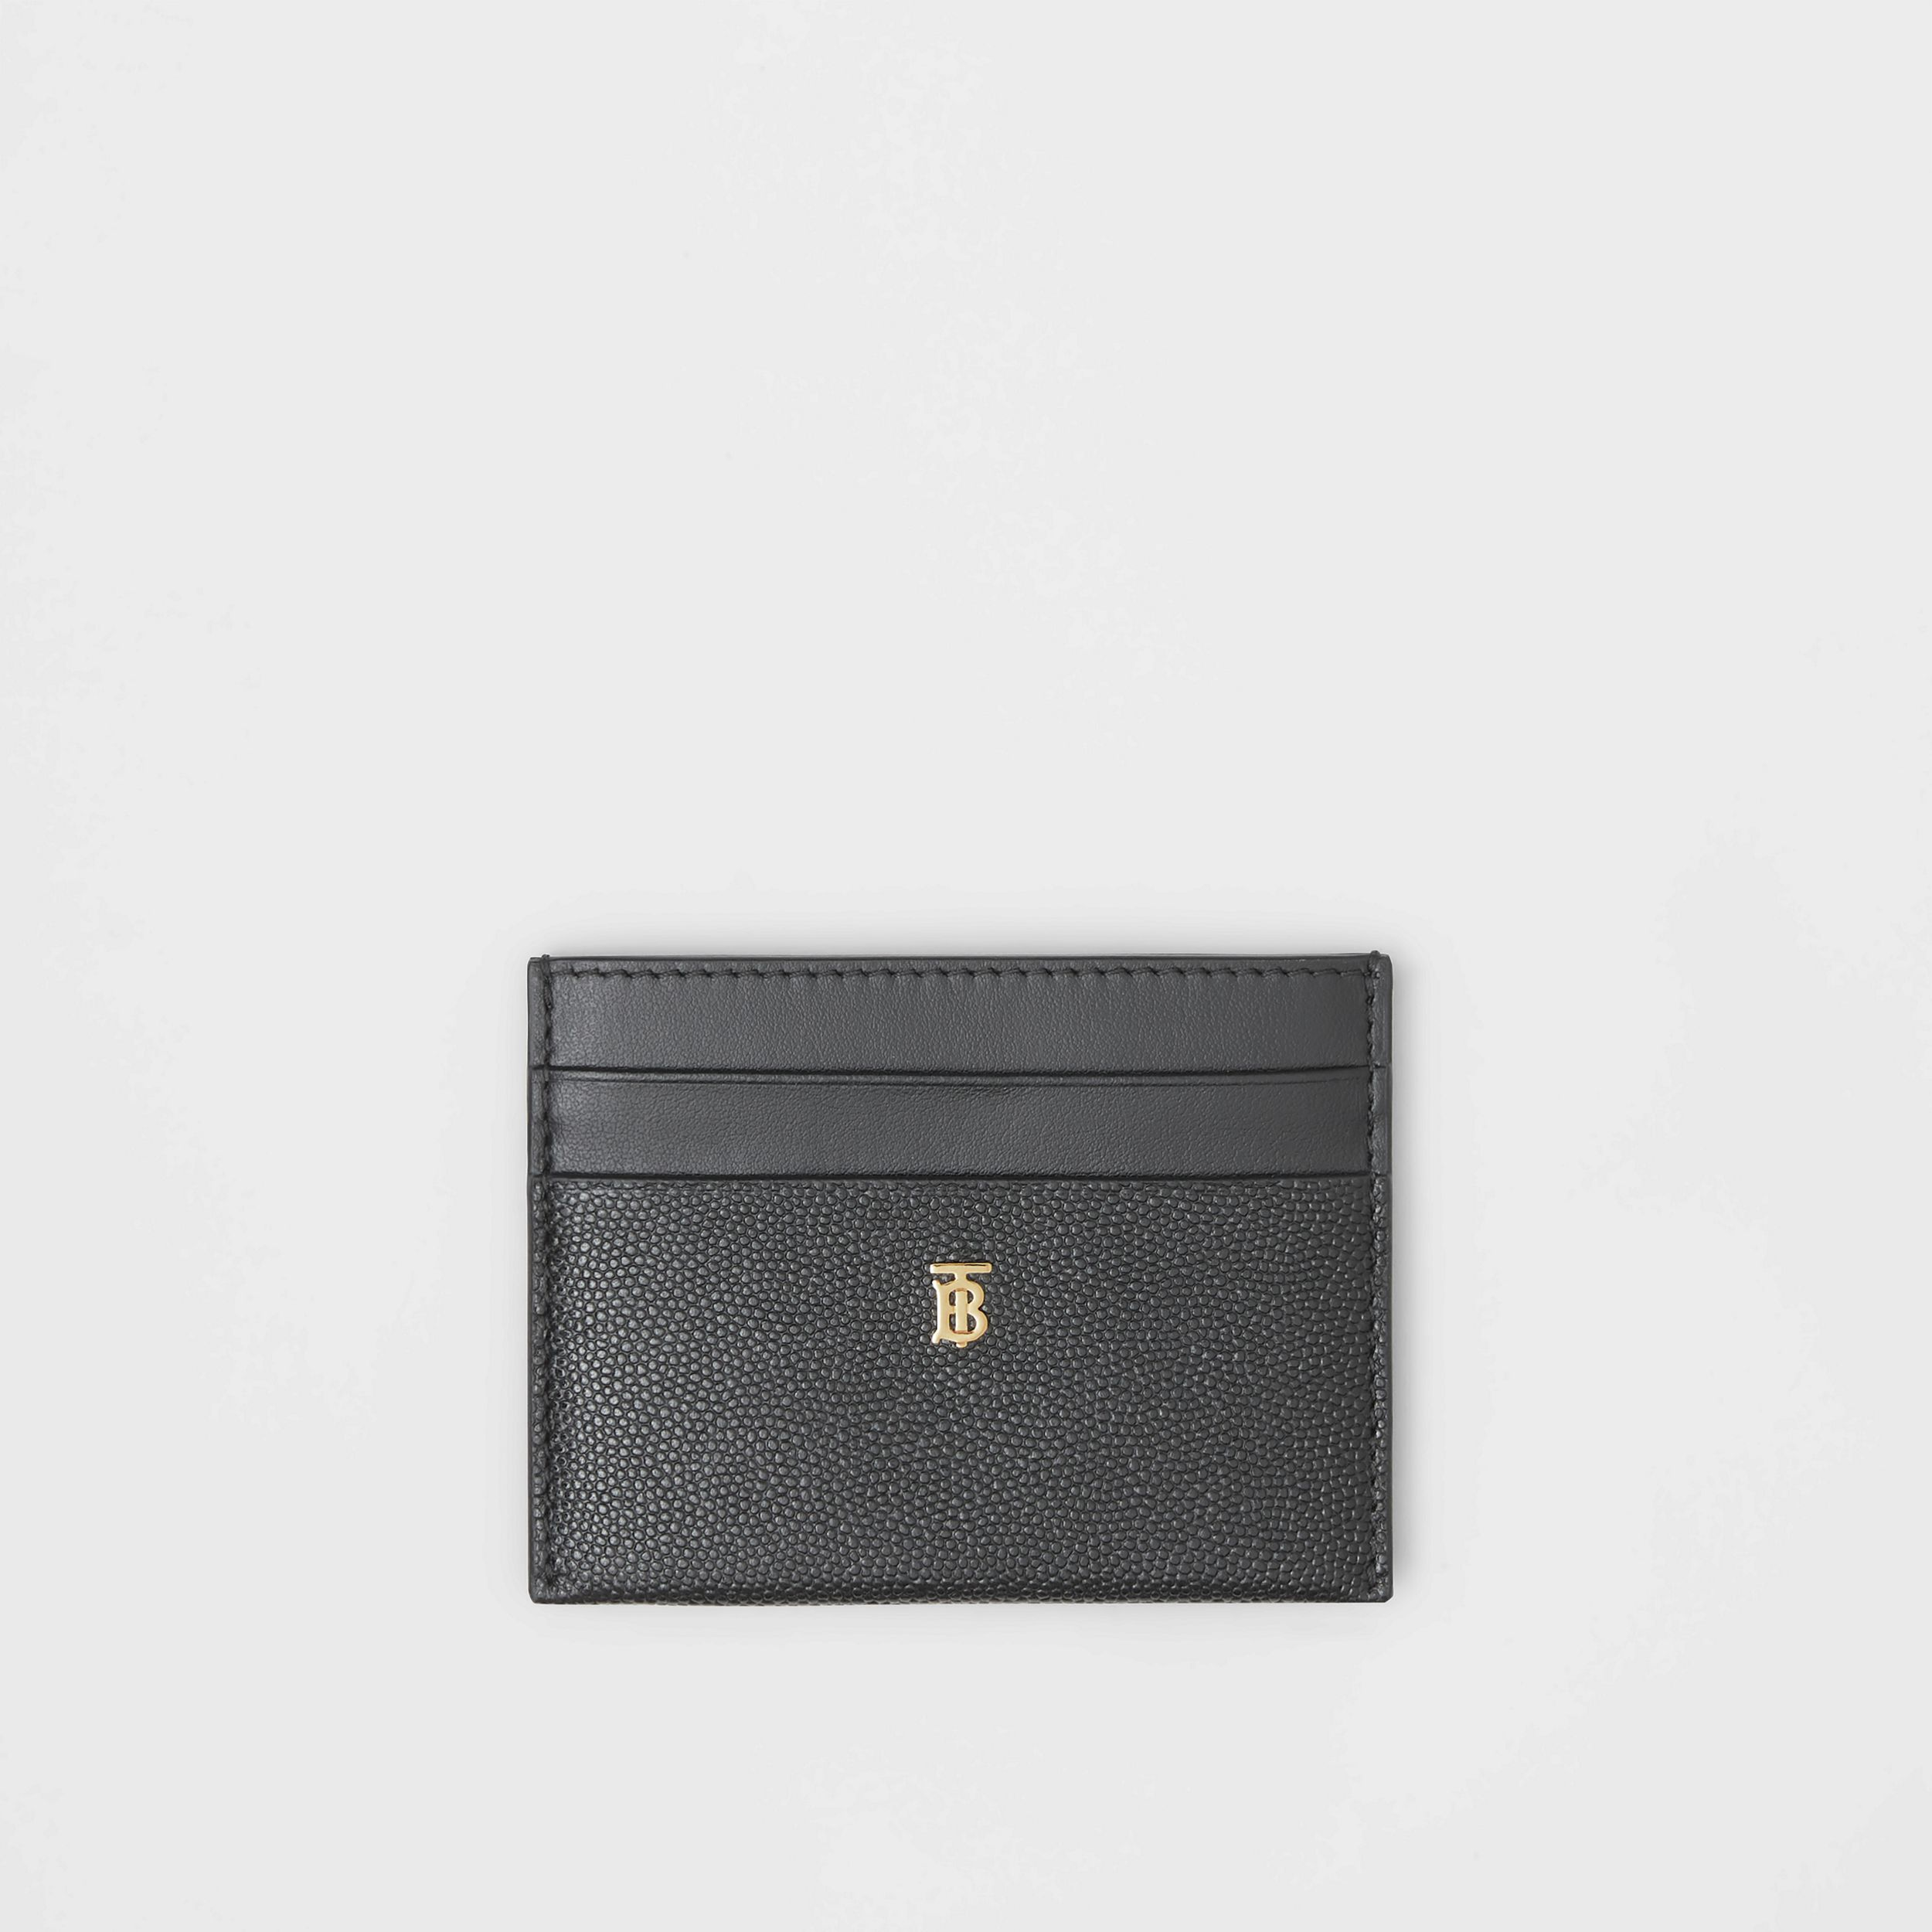 Monogram Motif Leather Card Case in Black - Women | Burberry United Kingdom - 1